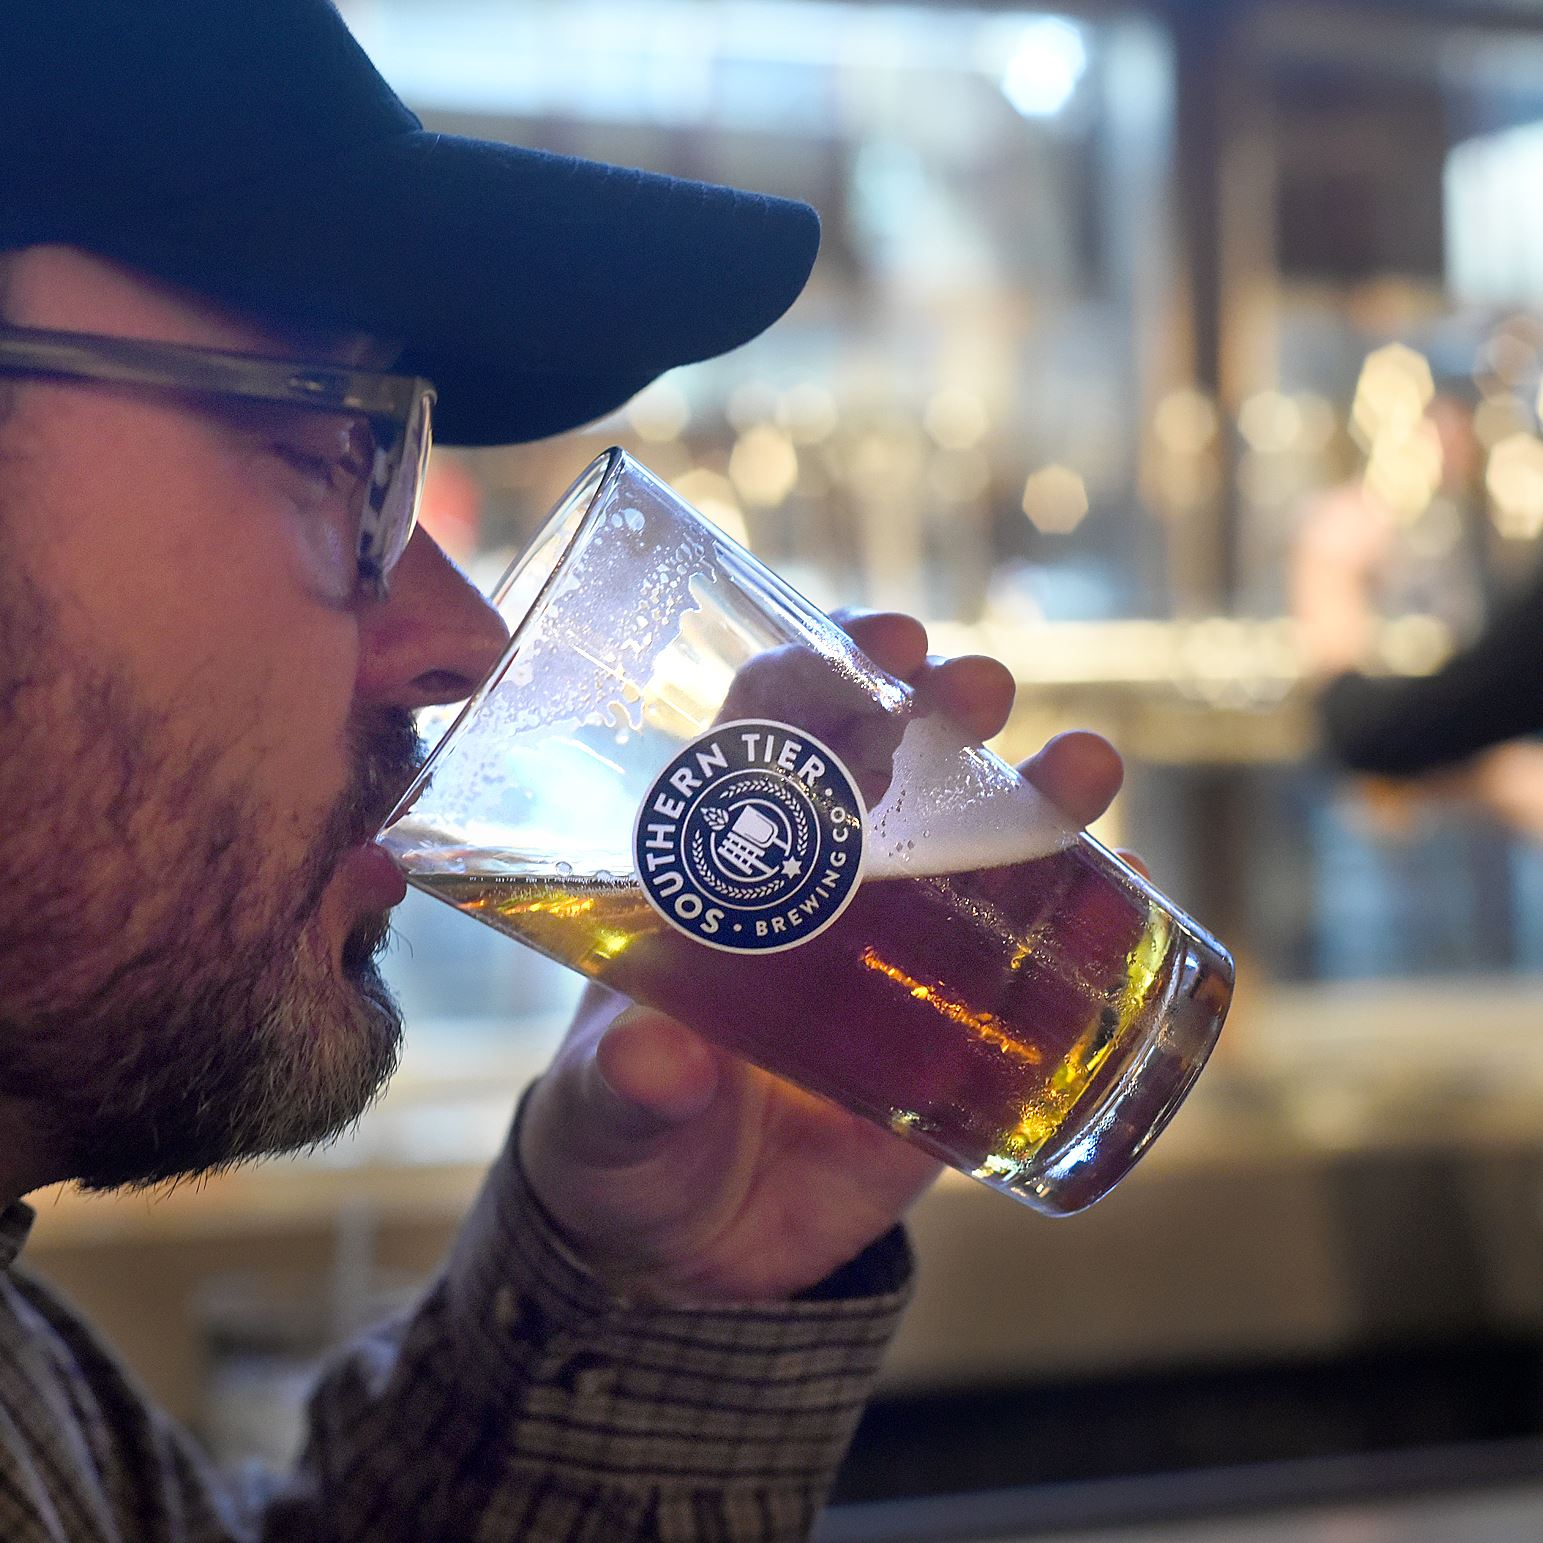 20170120radSouthernTier08-6 Andrew Marunczak of Pittsburgh's Brighton Heights enjoys a brew at the new Southern Tier Brewing on North Shore Drive.